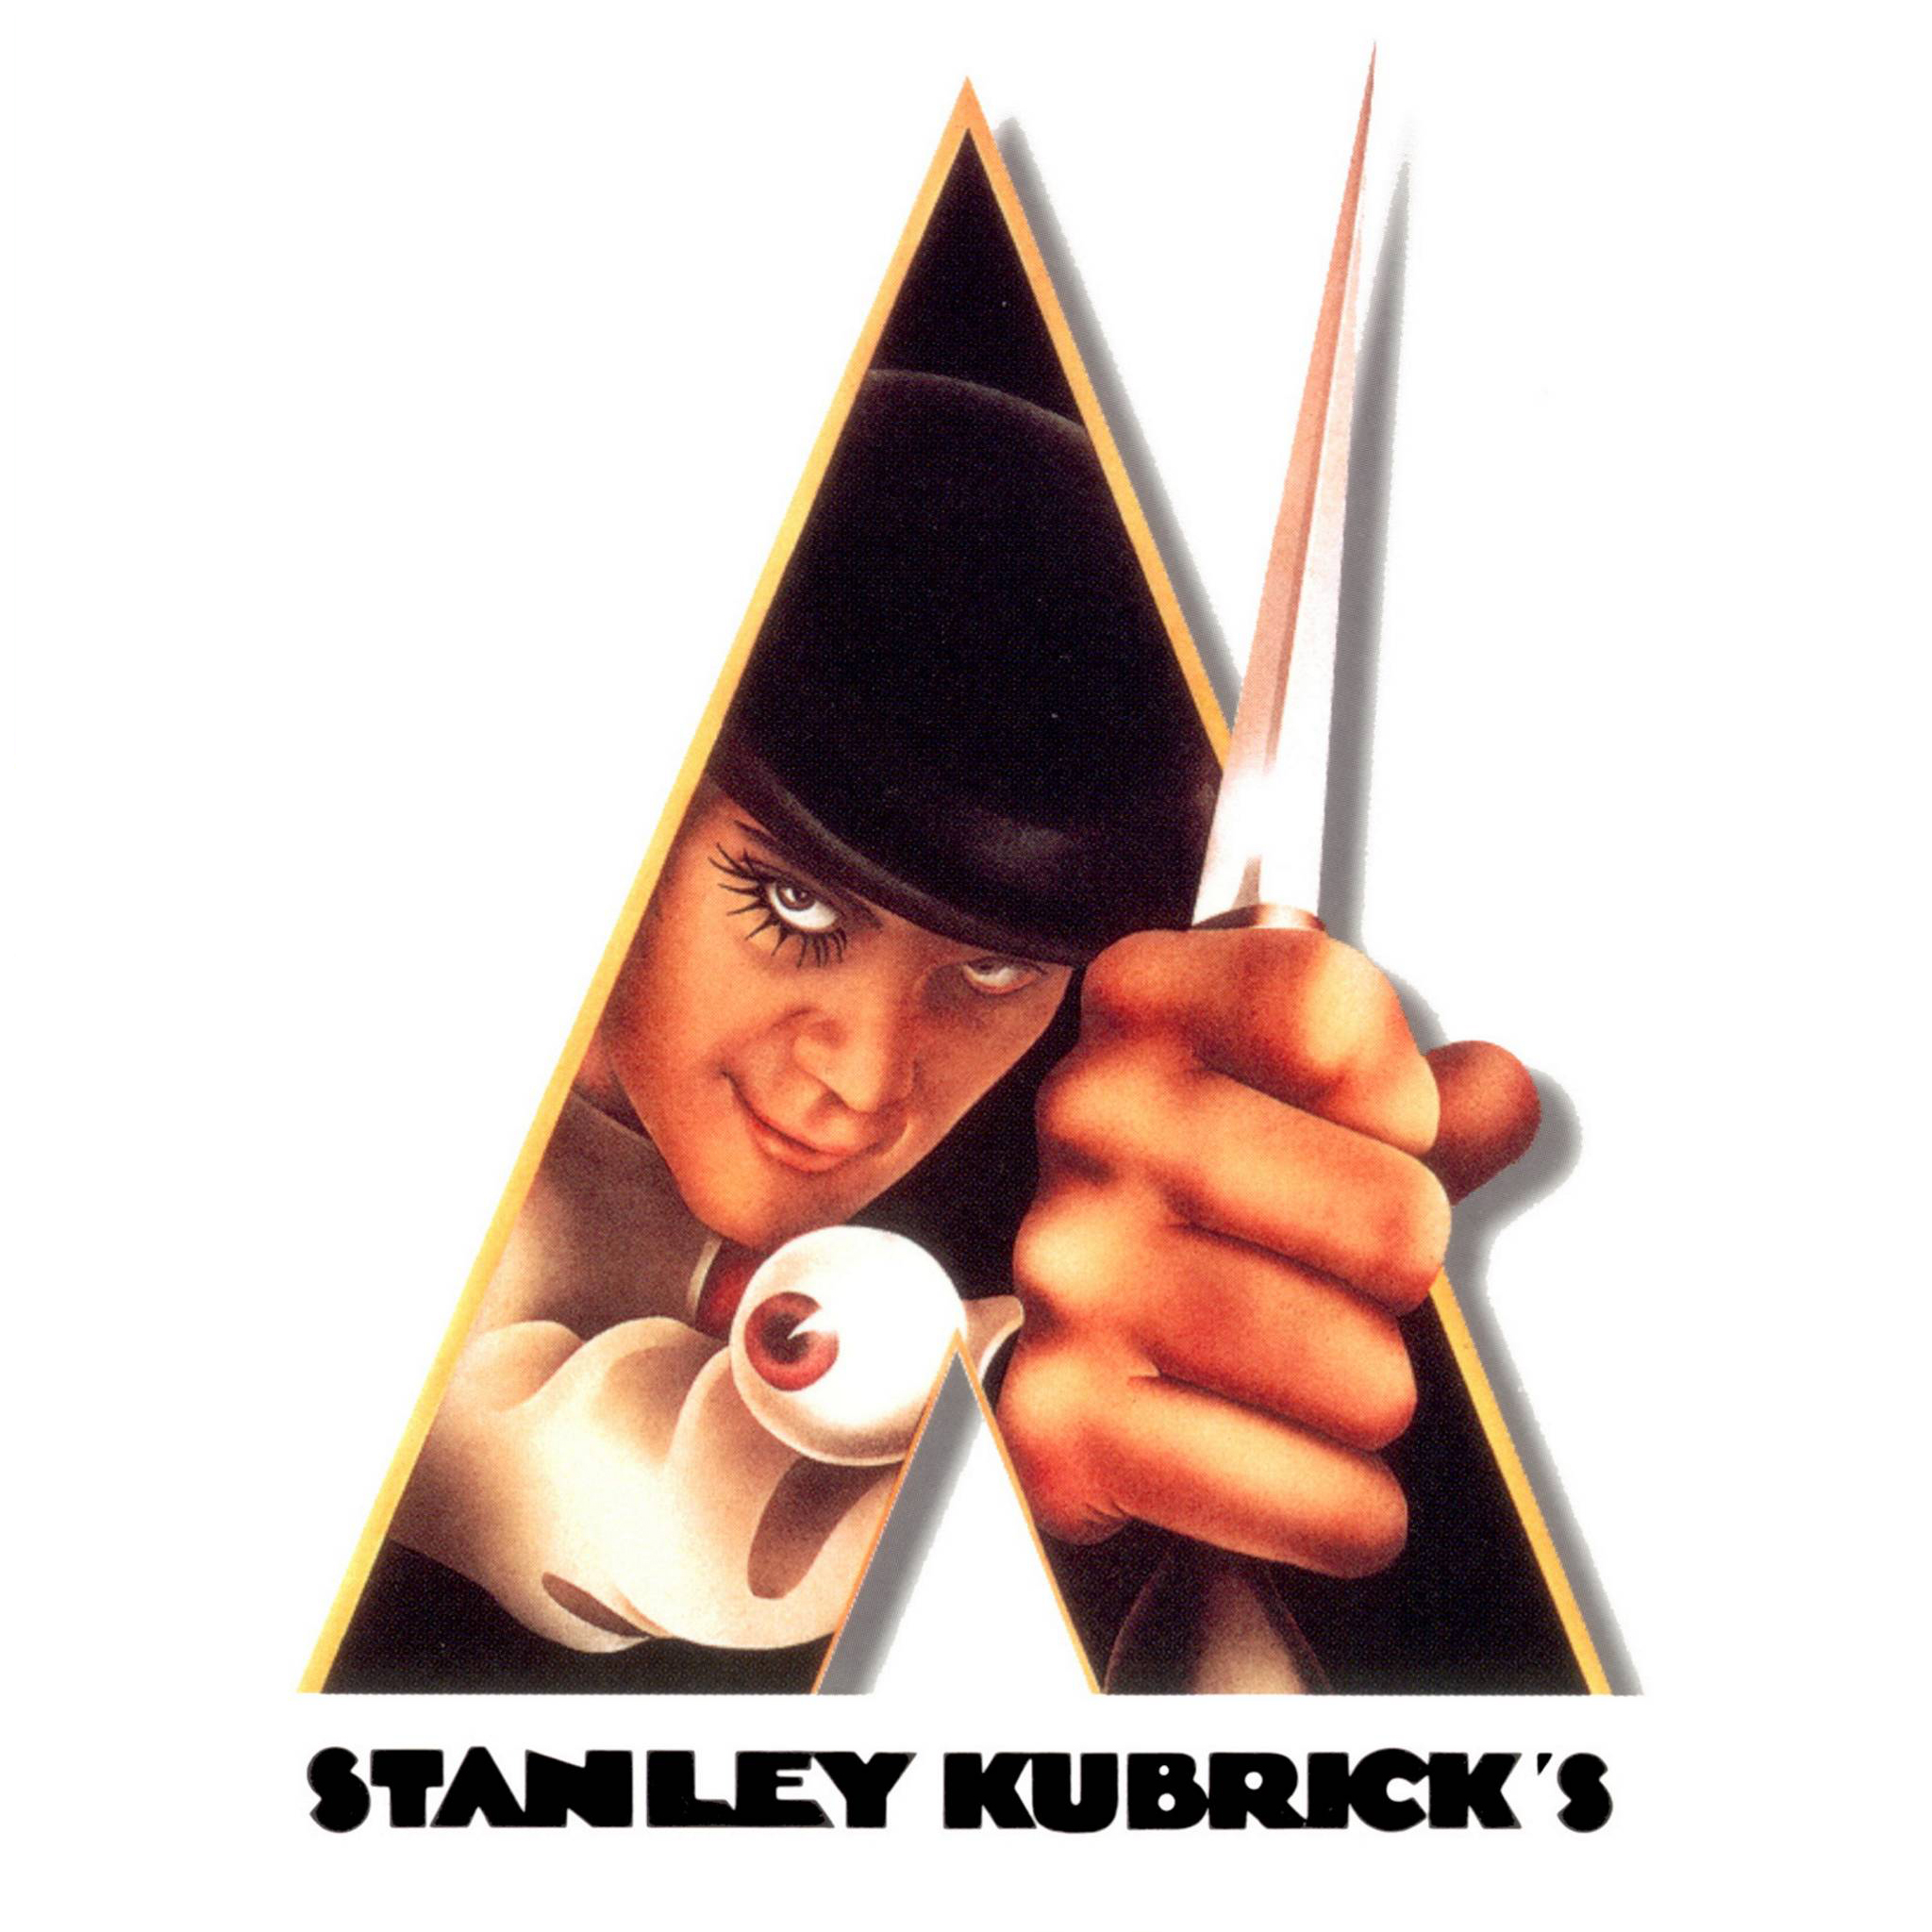 A Clockwork Orange 1971 3Wallpapers iPad Retina A Clockwork Orange   1971 (Stanley Kubrick)   iPad Retina